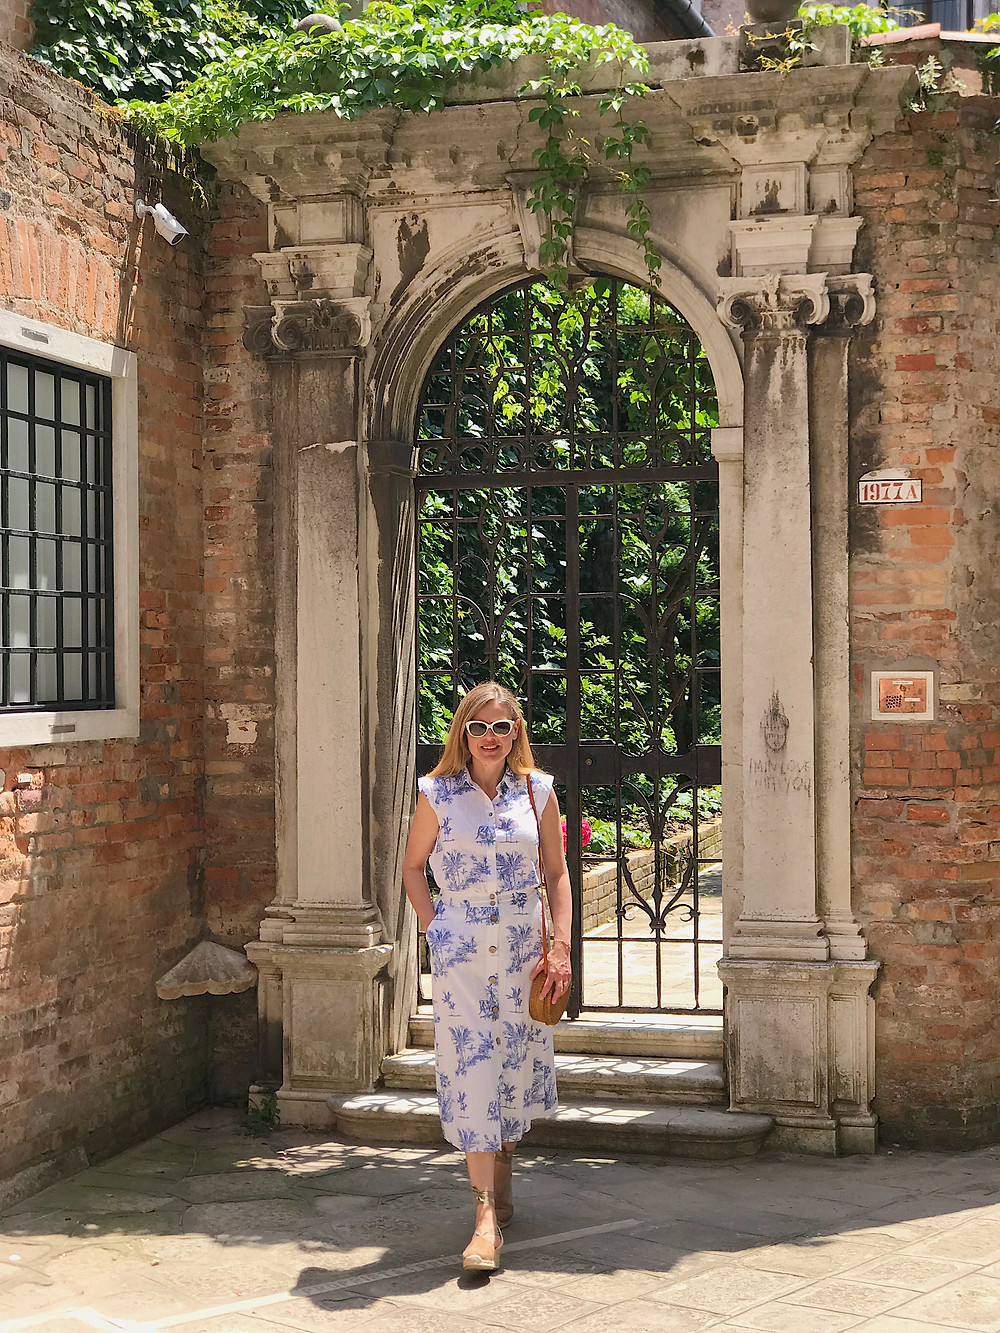 woman in front of a gateway in Venice